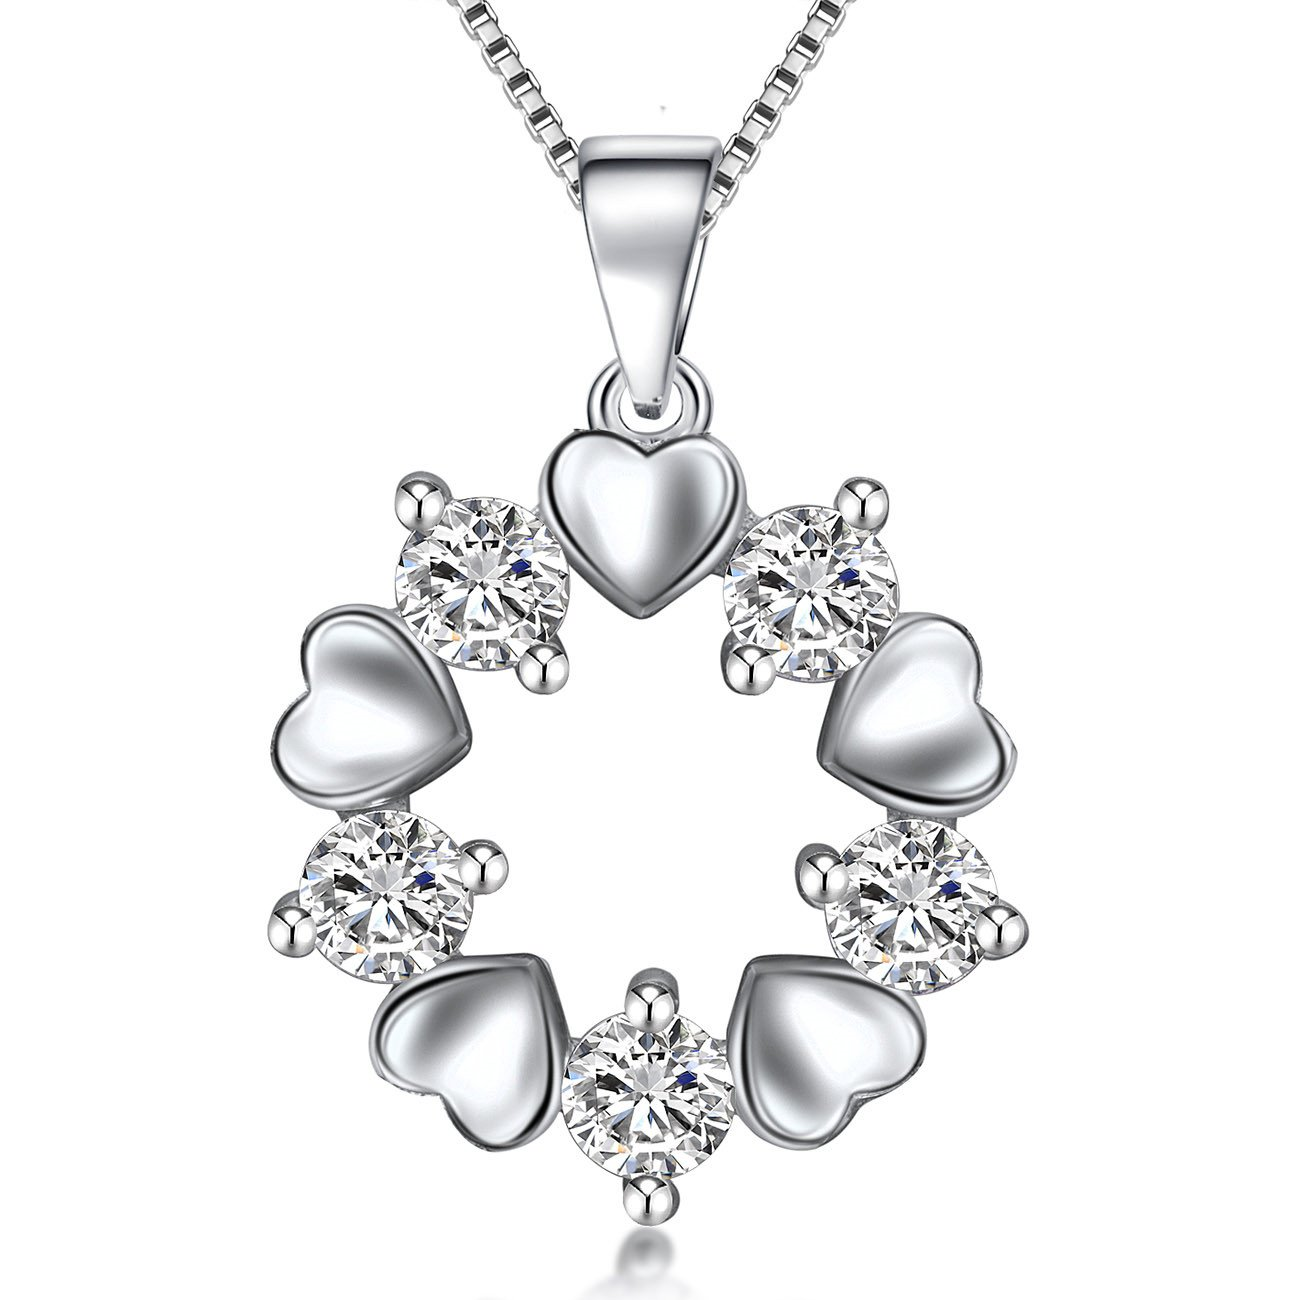 Ategazza Silver Cat Necklace and Earrings for Women with Crystal GC16-GE02